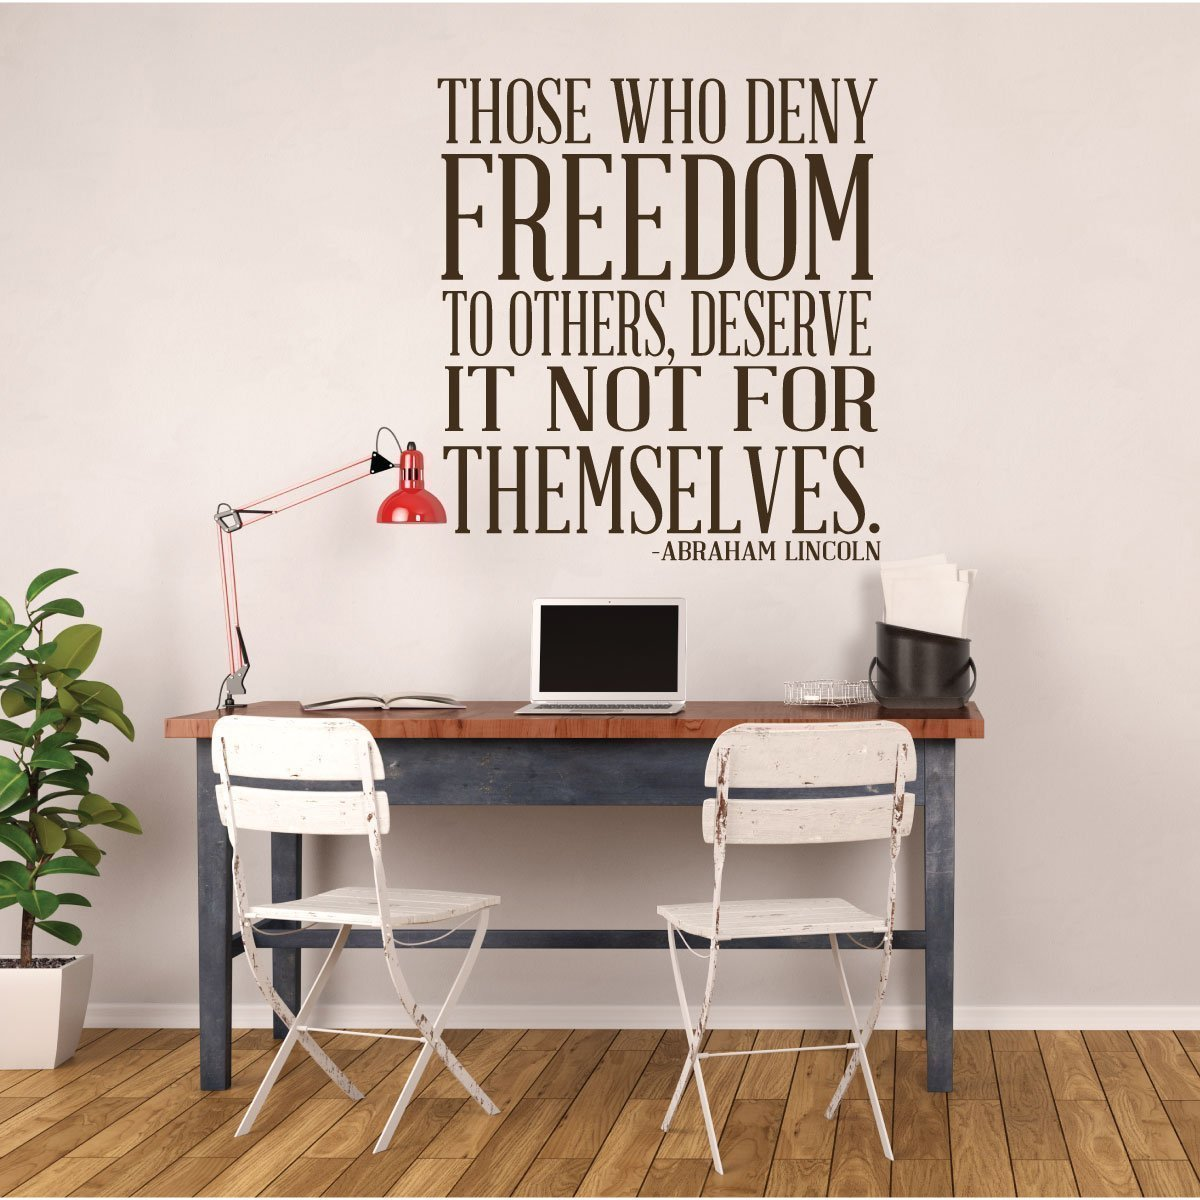 Freedom Quotes - Abraham Lincoln Those Who Deny Freedom Wall Sign Vinyl Decal Home Decoration Inspirational for Teachers Classrooms Patriotic